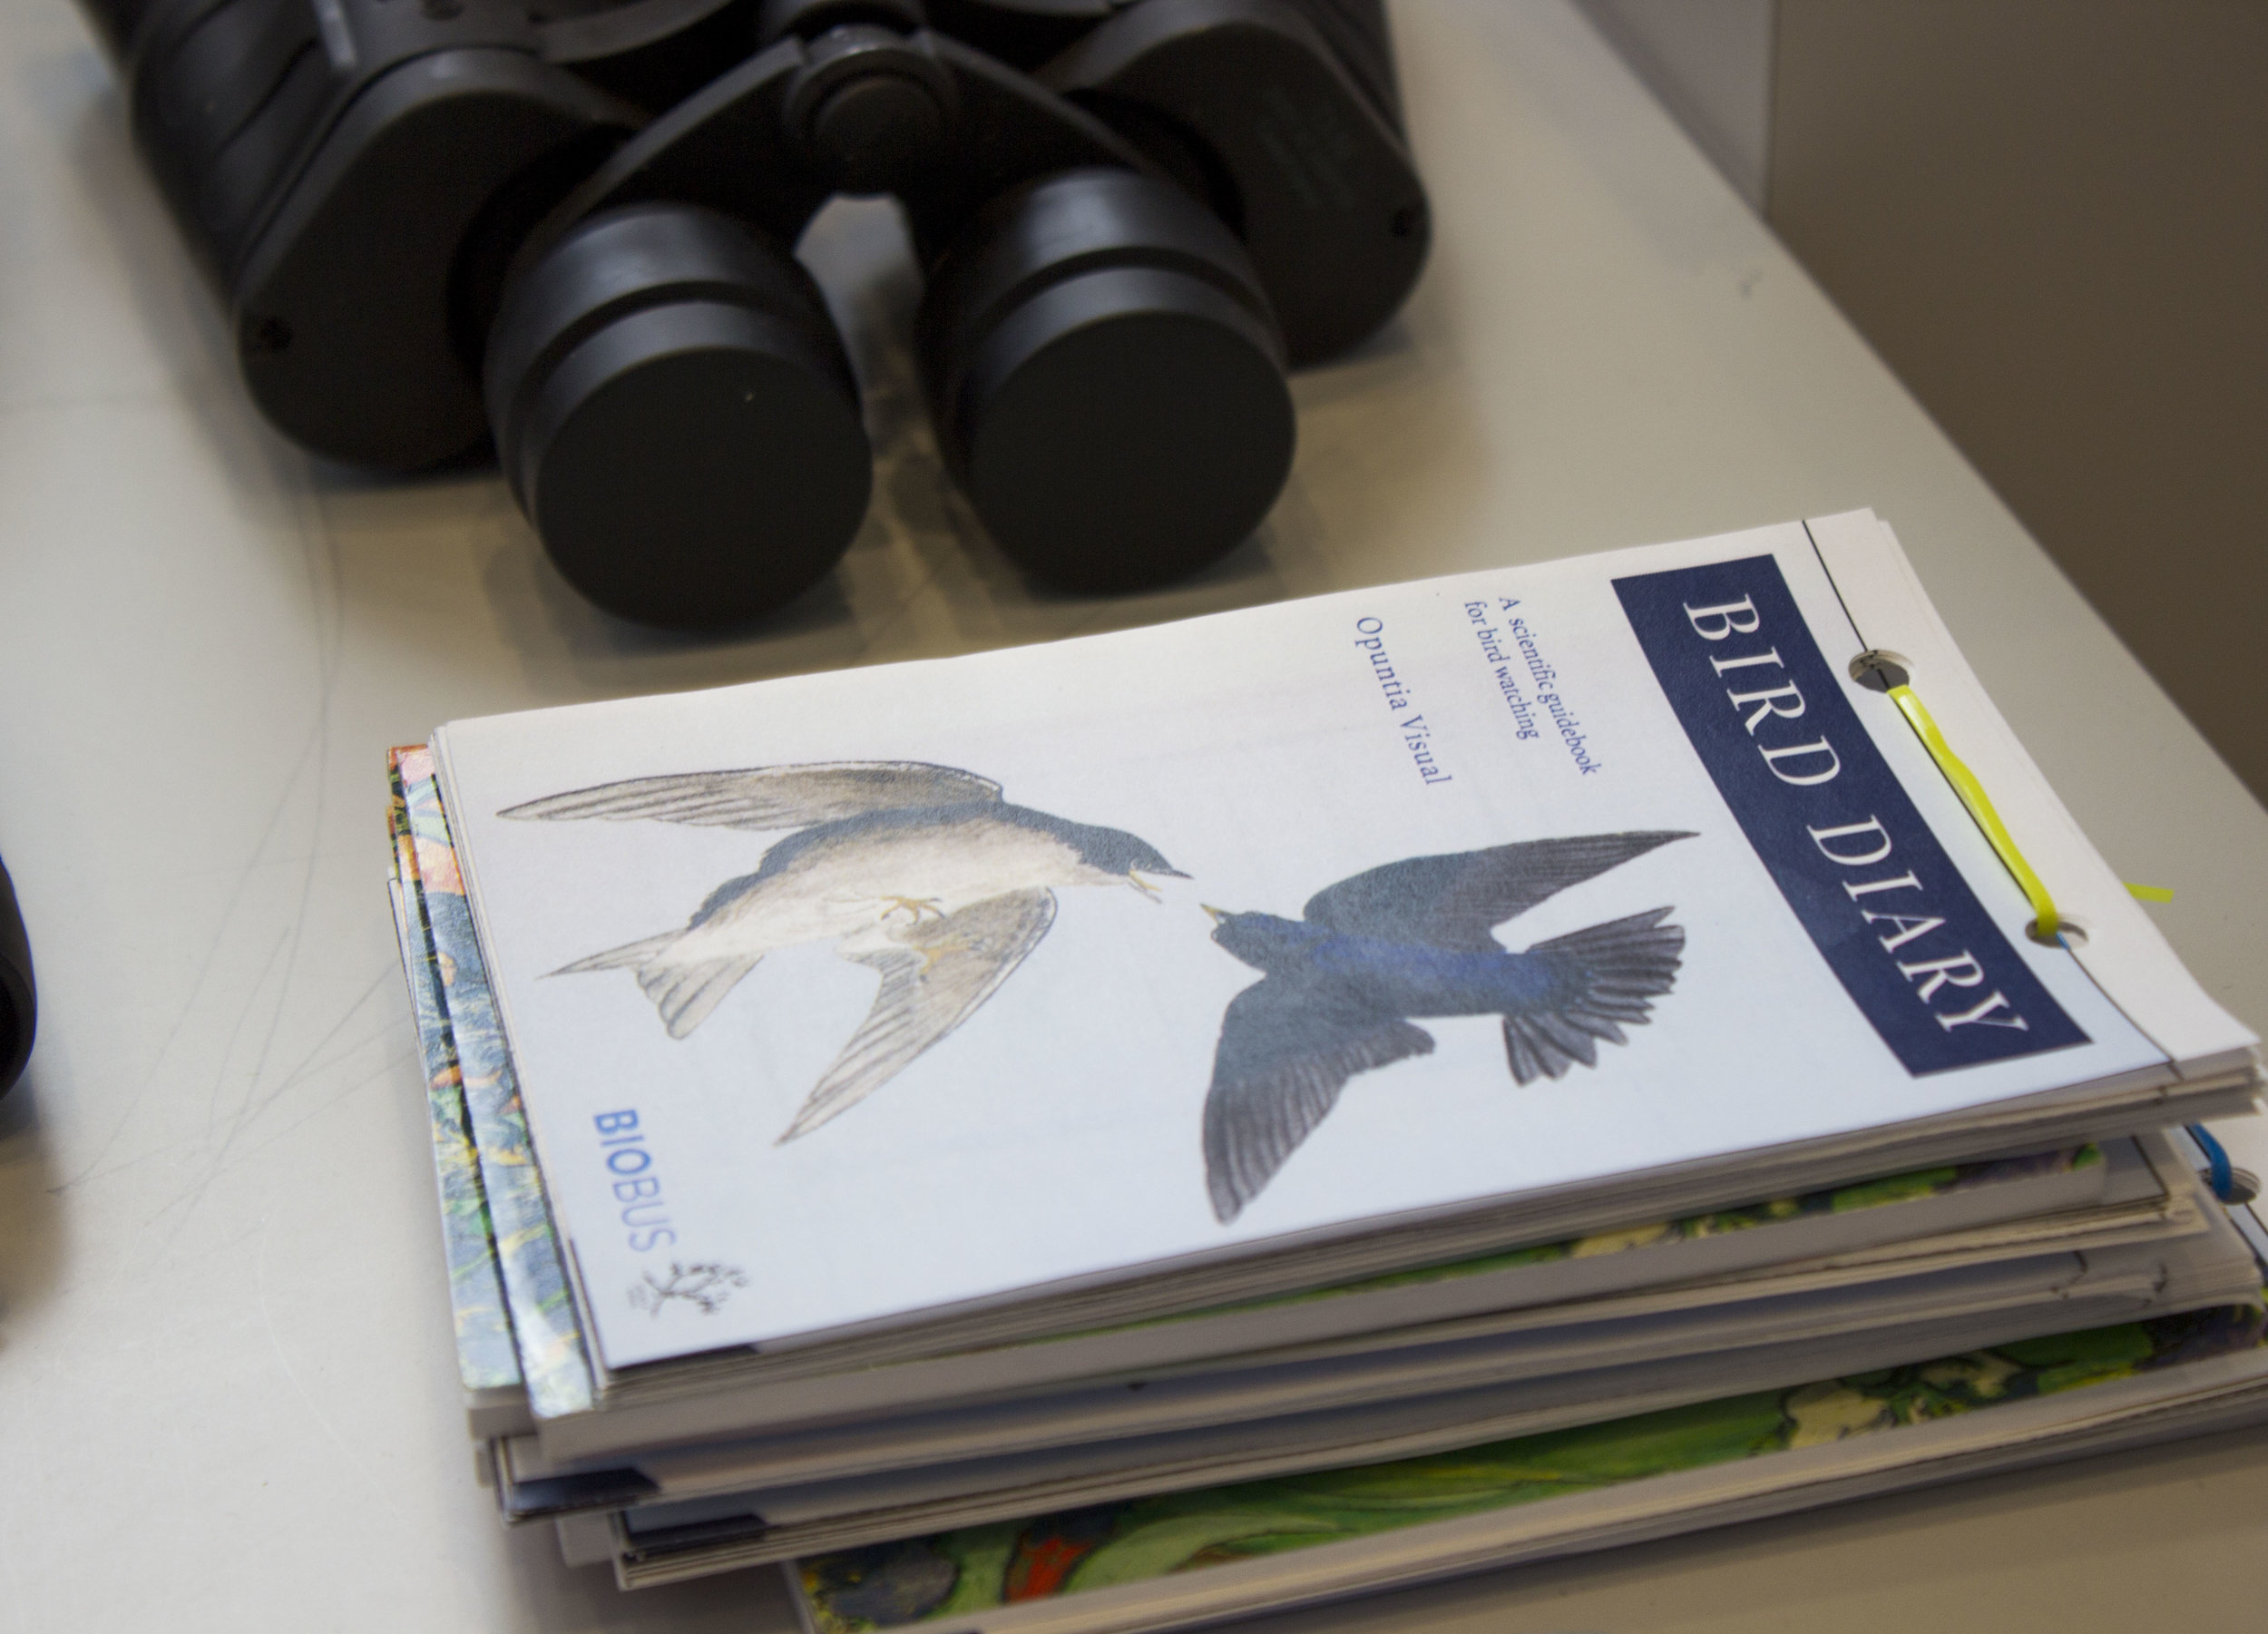 The guide to make your own bird diary here!